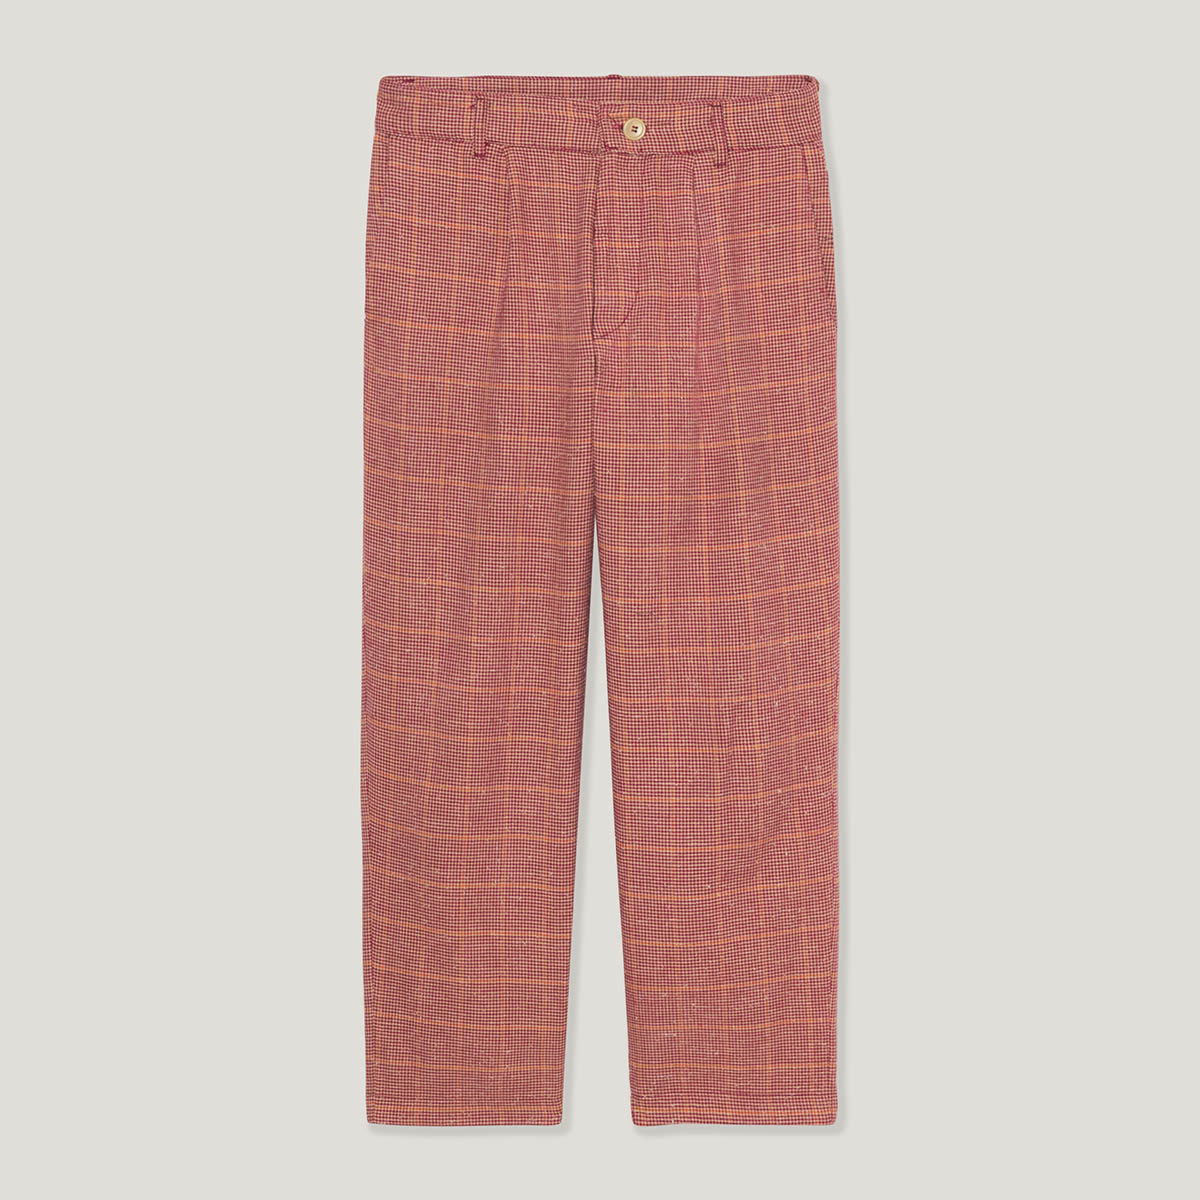 Pinwall-Pin-Wall-Flat-Lay-Damion-Lloyd-Photography-Commercial-Product-Laydown-Apparel-Clothing-Los-Angeles-Orange-County-YONY-plaid-checkers-red-pants